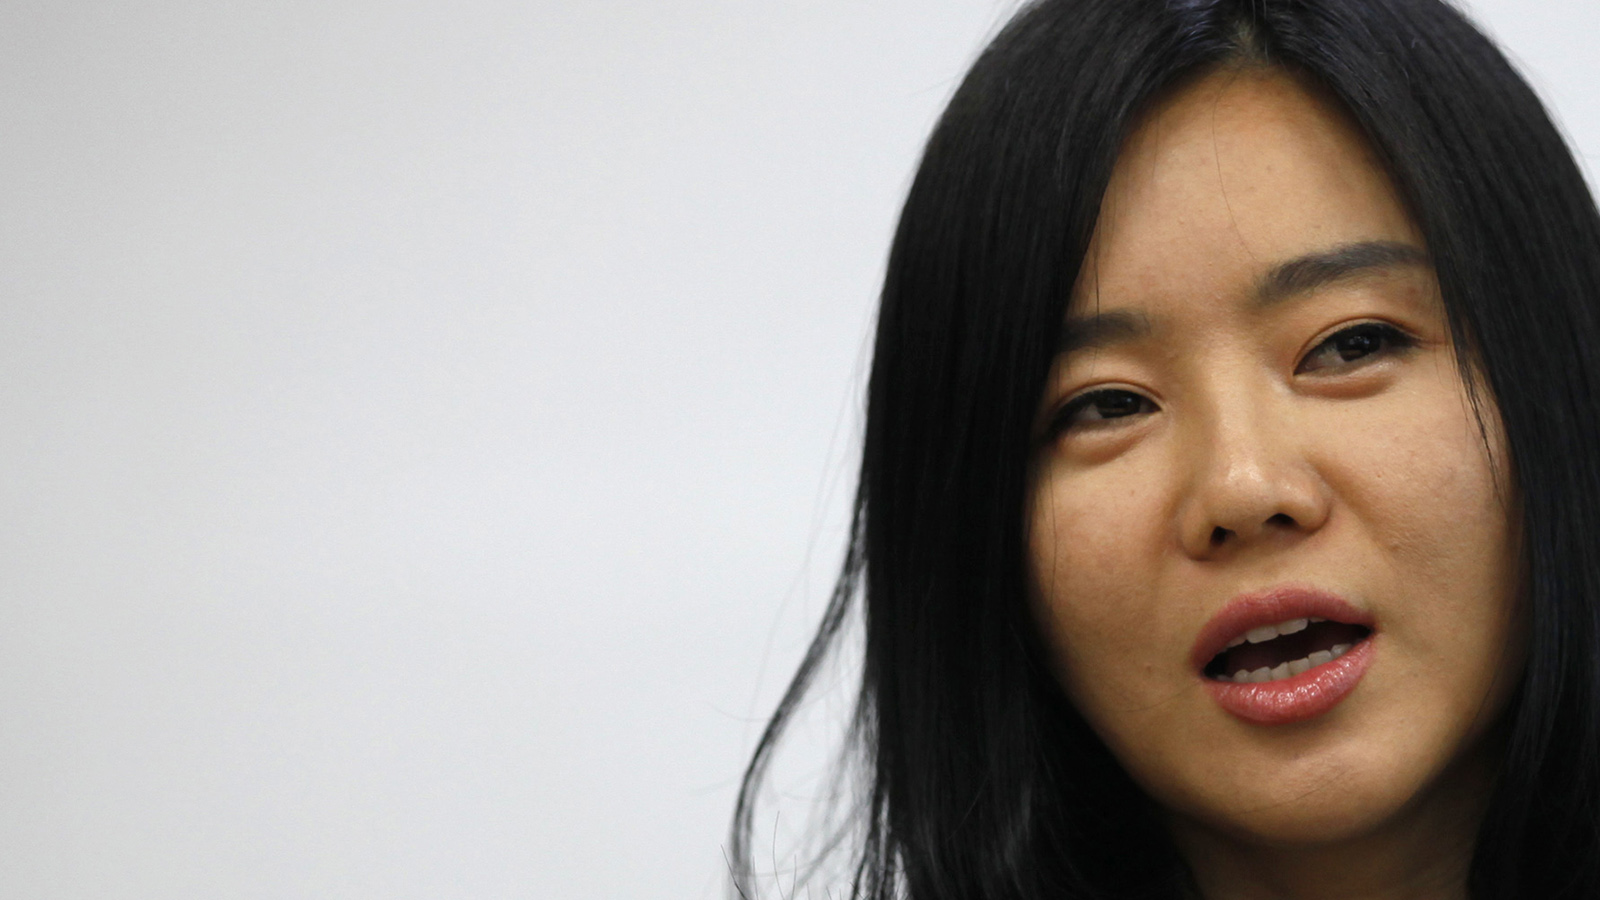 Lee Hyeon-seo, 33, who came to South Korea in 2008, speaks during an interview with Reuters in Seoul, May 29, 2013. From the streets of Seoul to the European parliament a new generation of North Korean defectors is stepping into the limelight, telling their personal stories to highlight the human rights abuses in their homeland. Picture taken May 29, 2013. (Kim Hong-Ji/Reuters)